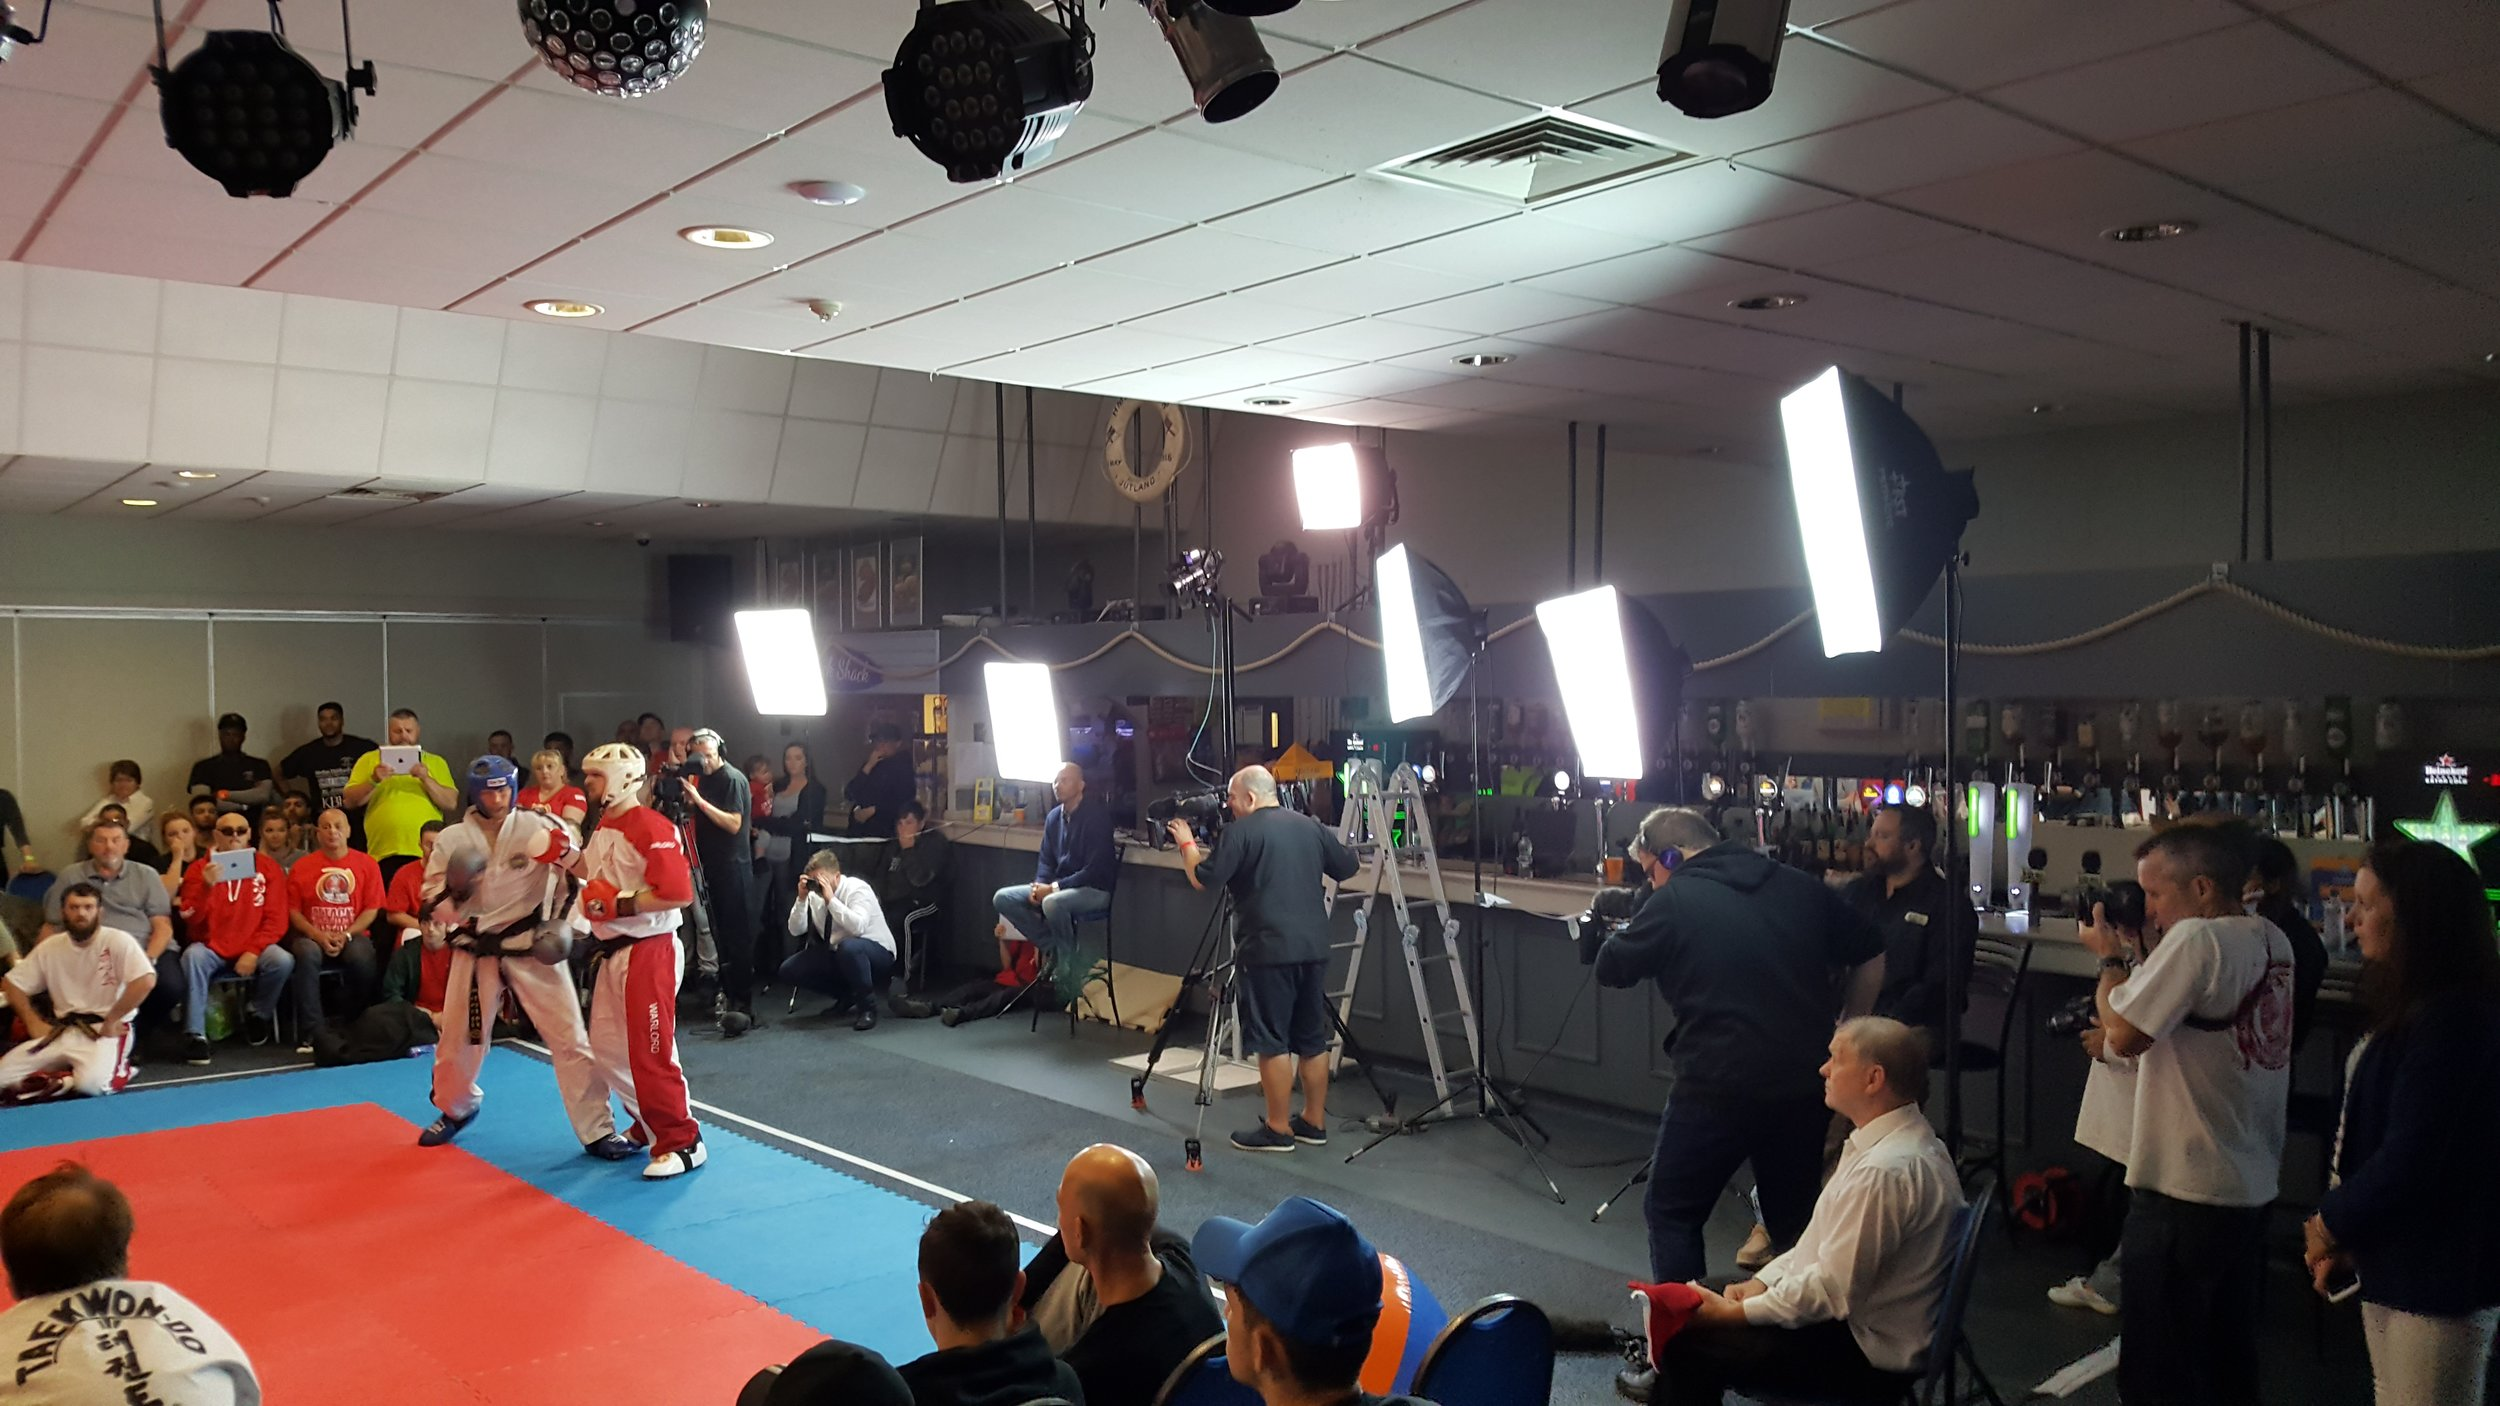 MULTI-CAMERA SHOOTS - With experience of live to TV multi-camera shoots, 8Live can fully produce your live event at affordable rates for every kind of media organisation